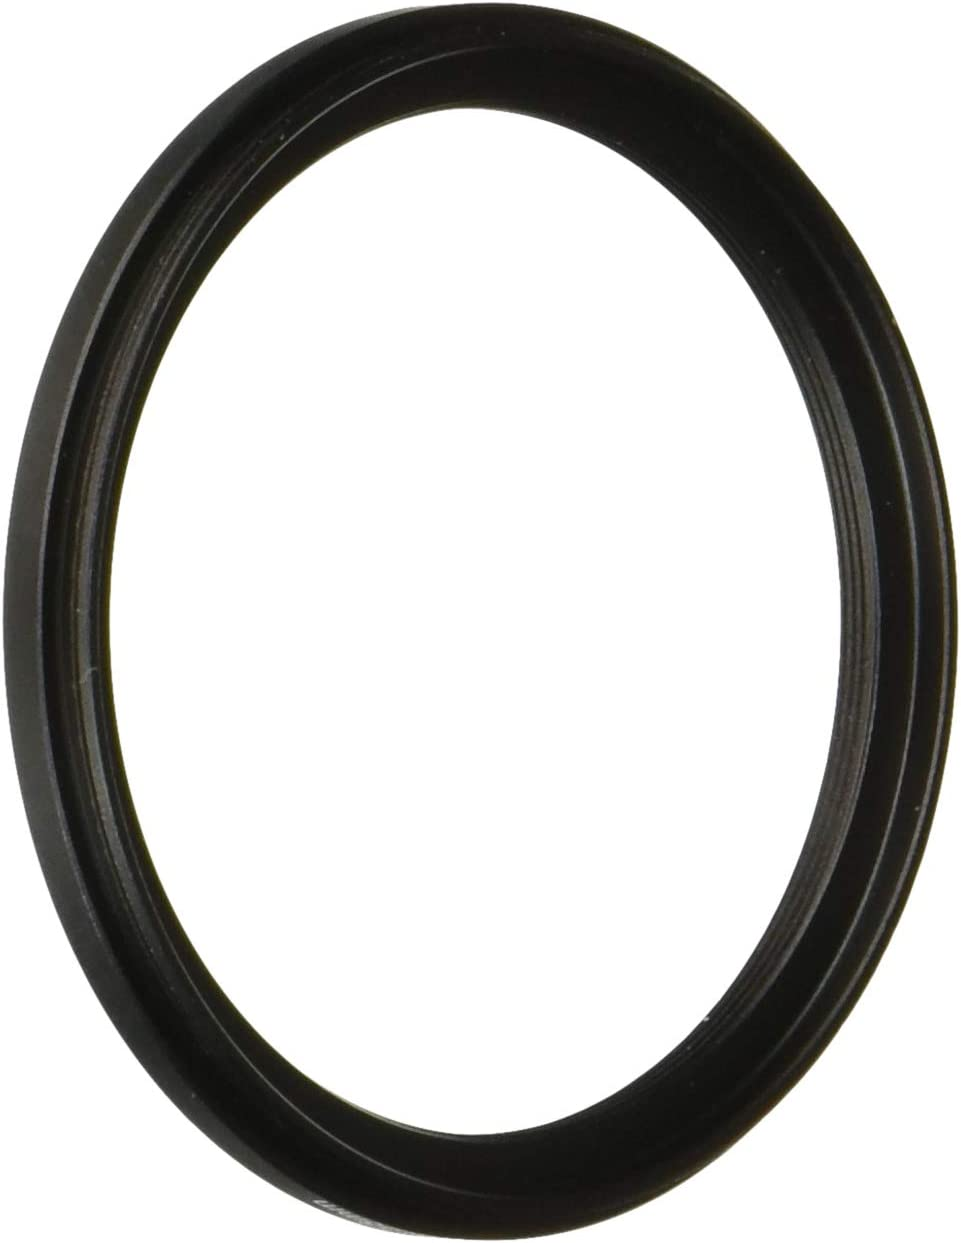 Polaroid Step-Down Aluminum Adapter Ring 67mm Lens To 58mm Filter Size